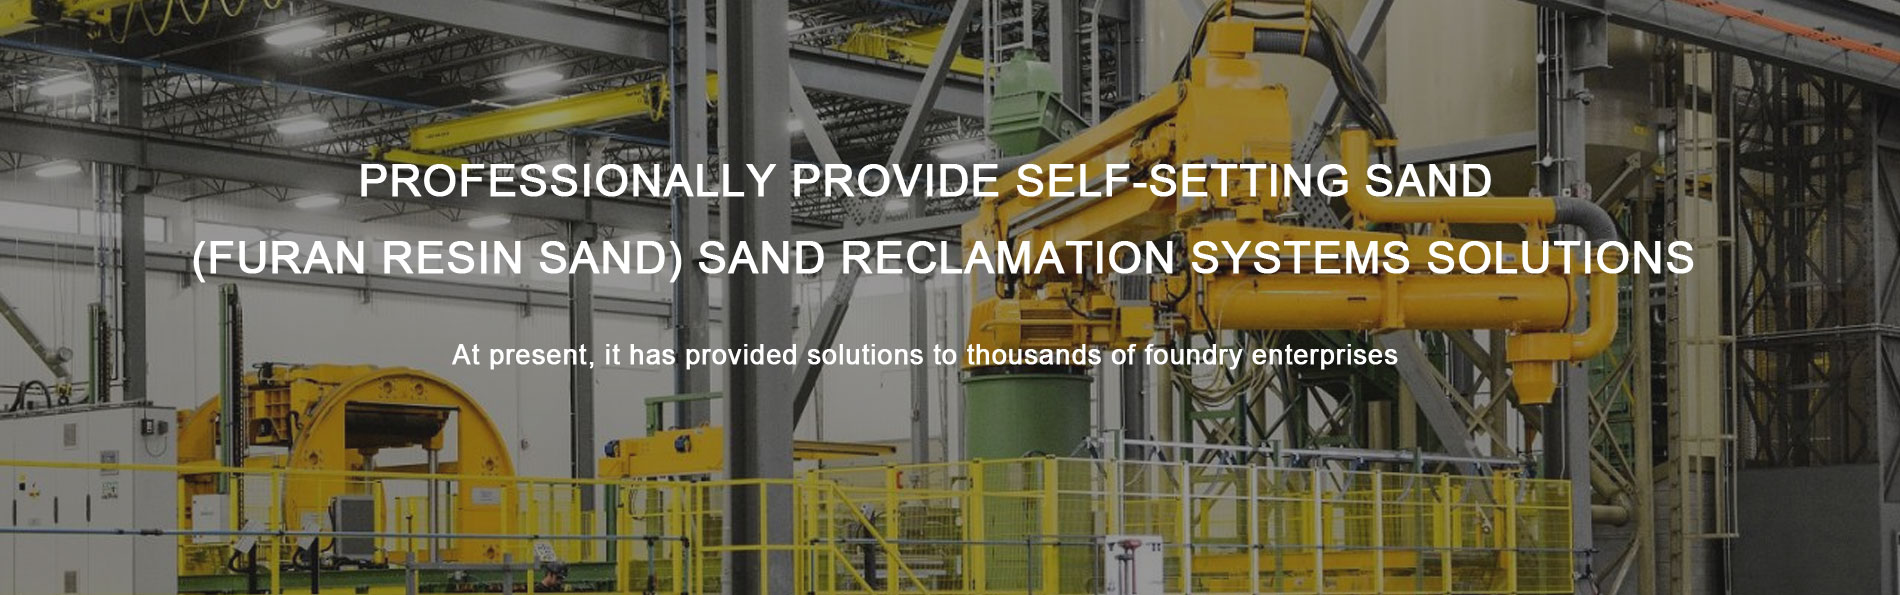 Professionally provide self-setting sand (furan resin sand) Sand Reclamation Systems solutions